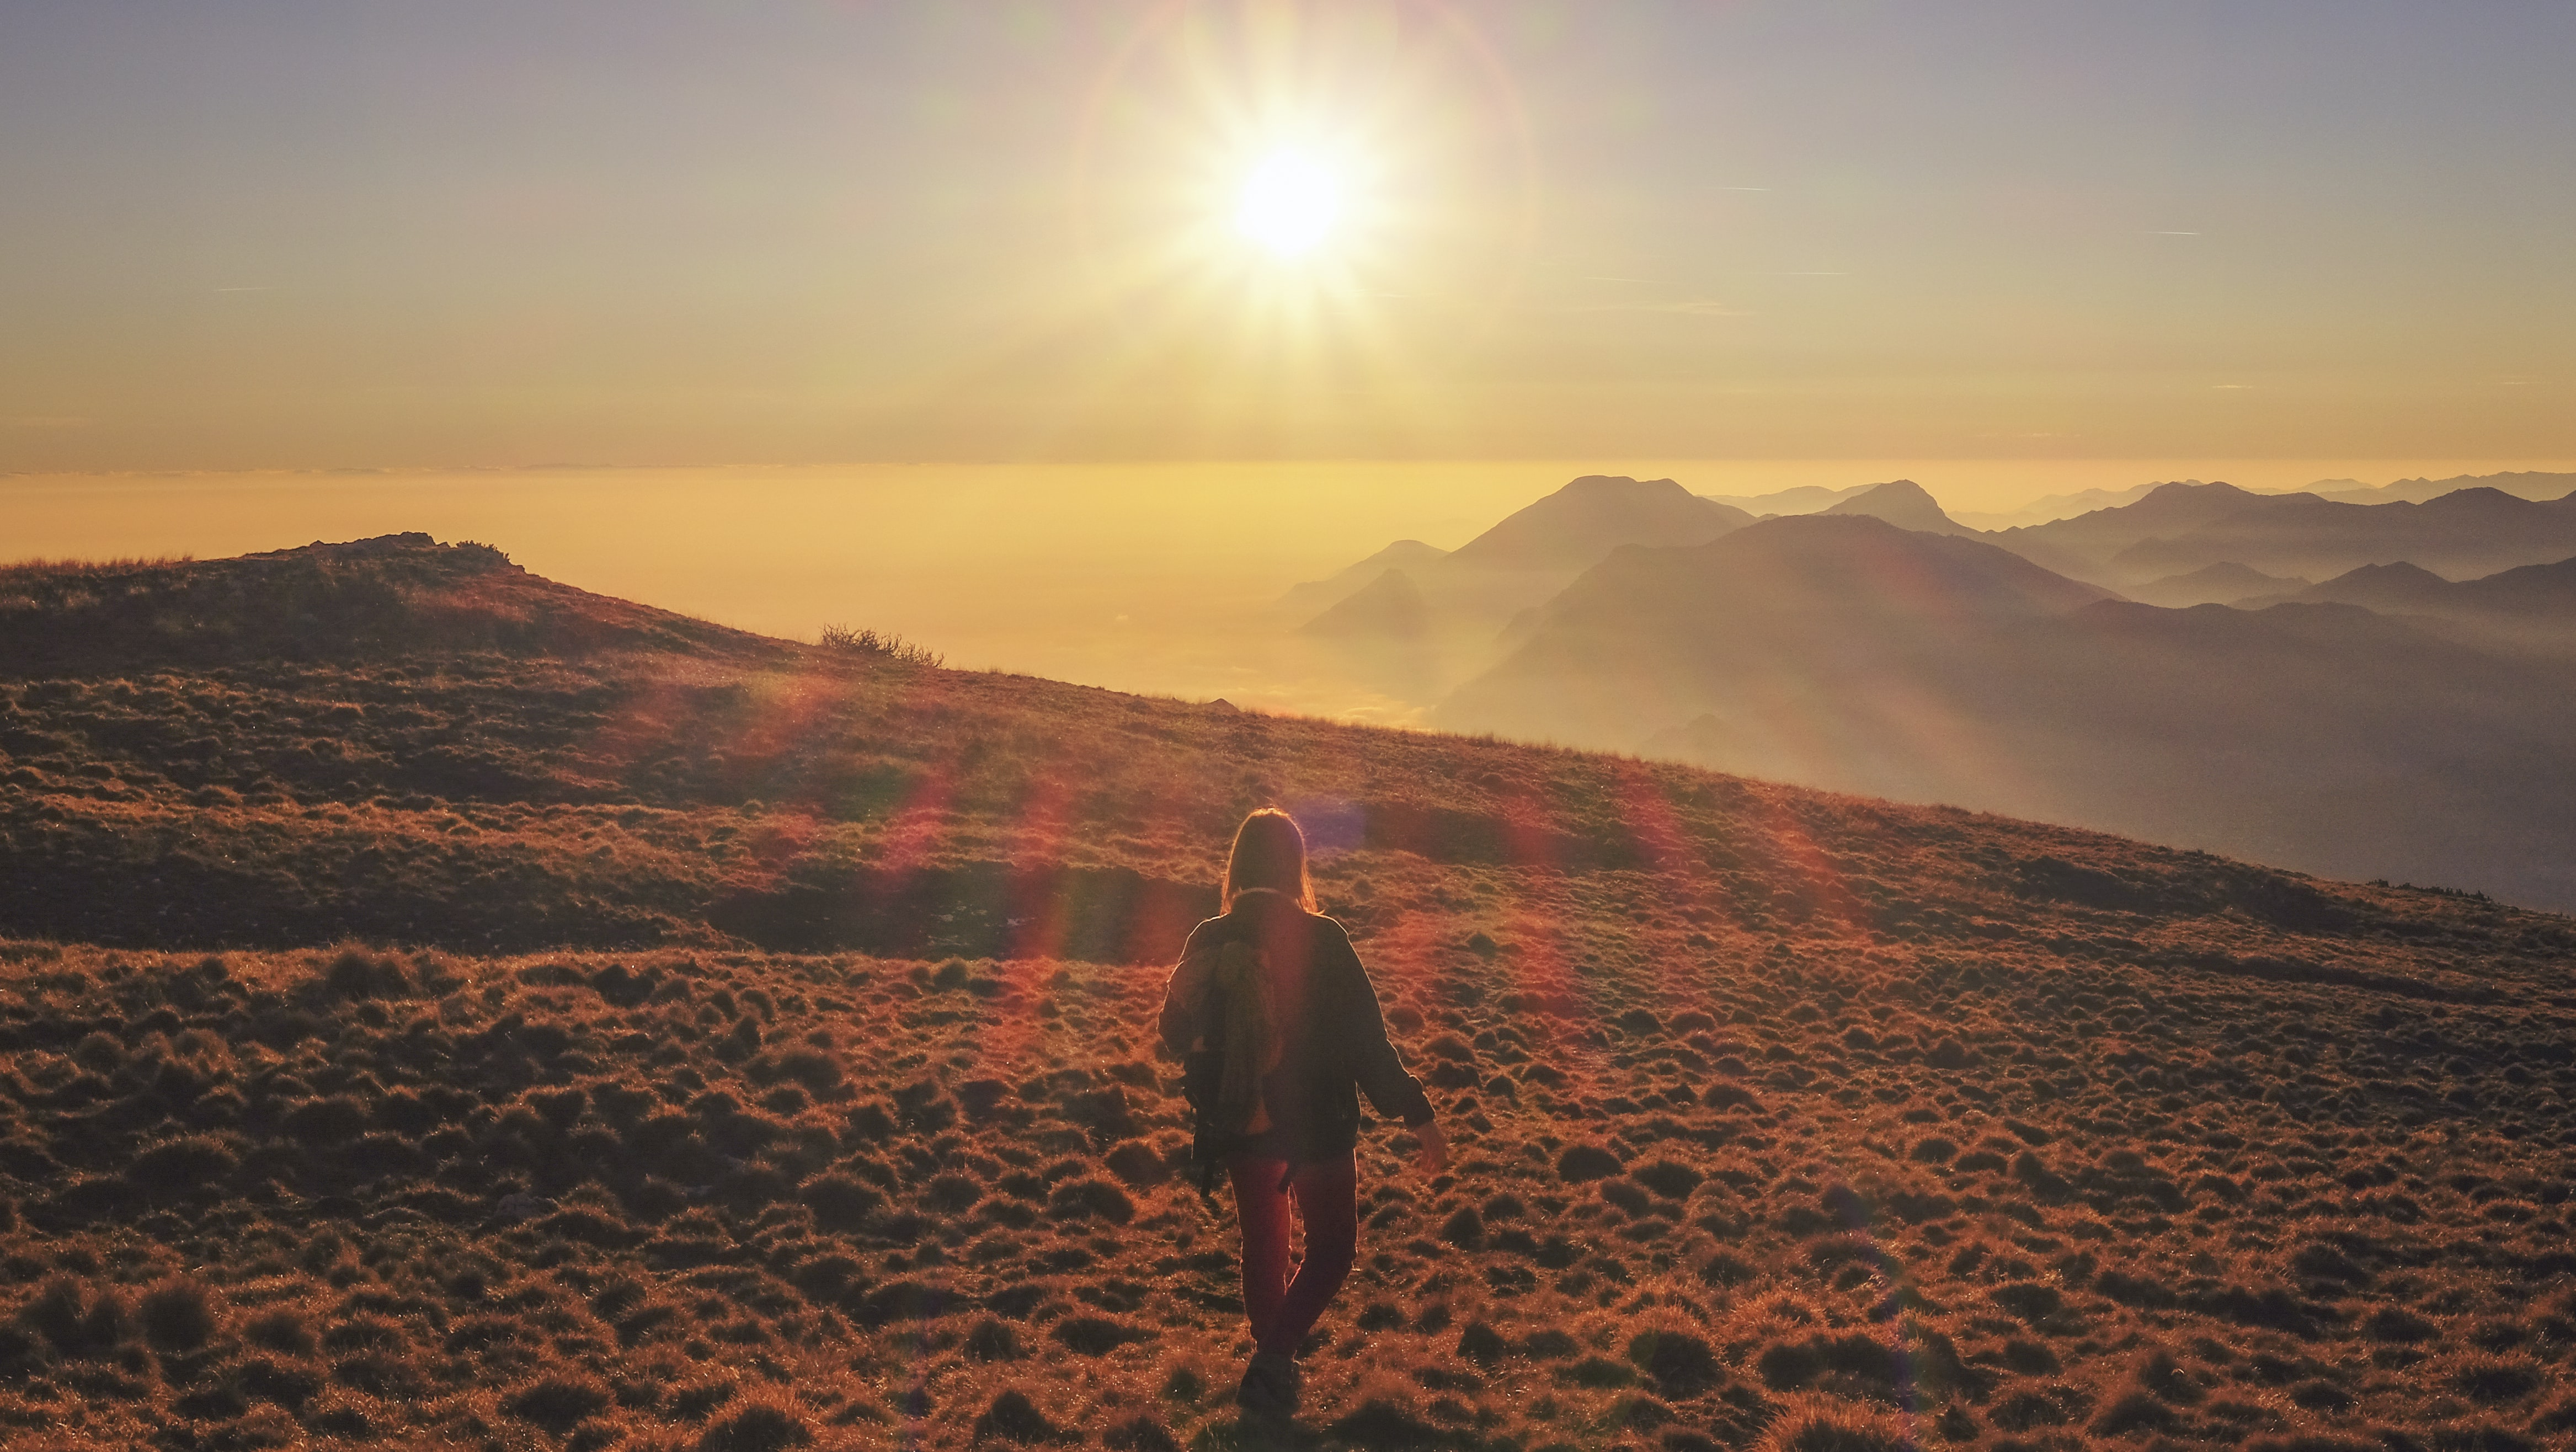 A woman walking on a mountain during sunrise or golden hour in Monte Altissimo di Nago